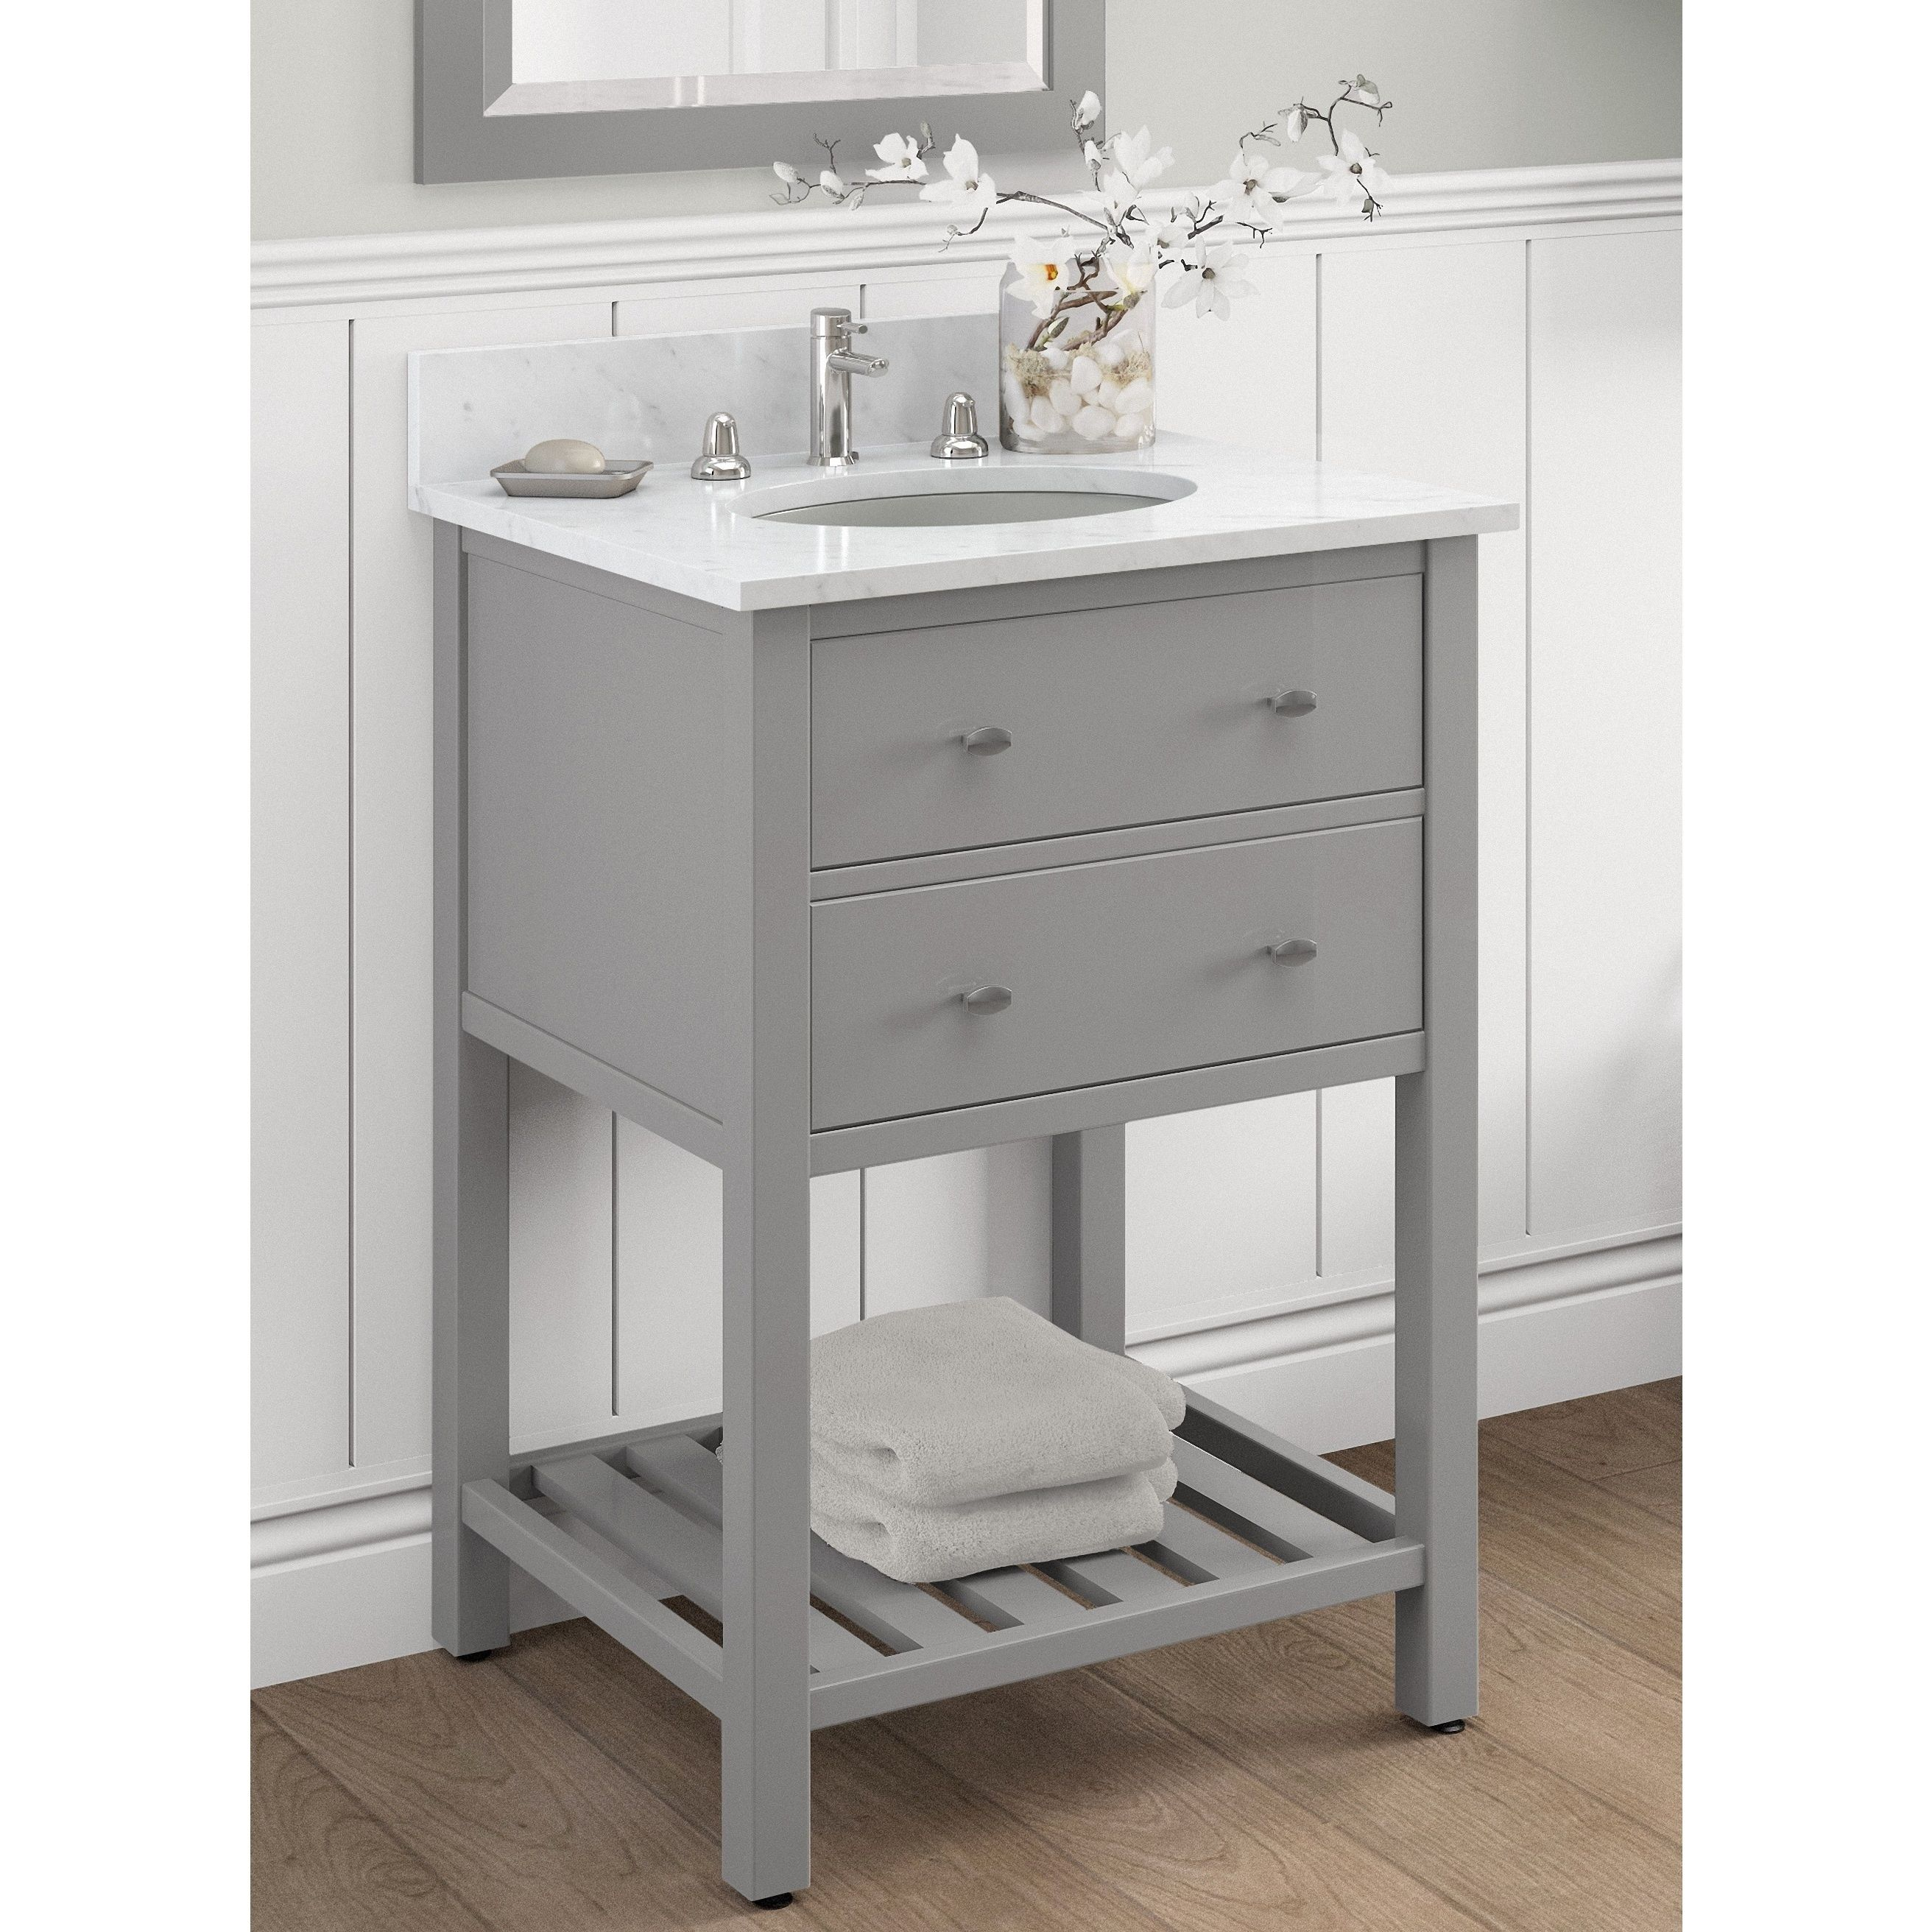 Alaterre Harrison 24 Inch Wood Single Sink Bath Vanity Grey Grey Finish Bath Vanities Single Sink Bathroom Vanity Bathroom Sink Vanity